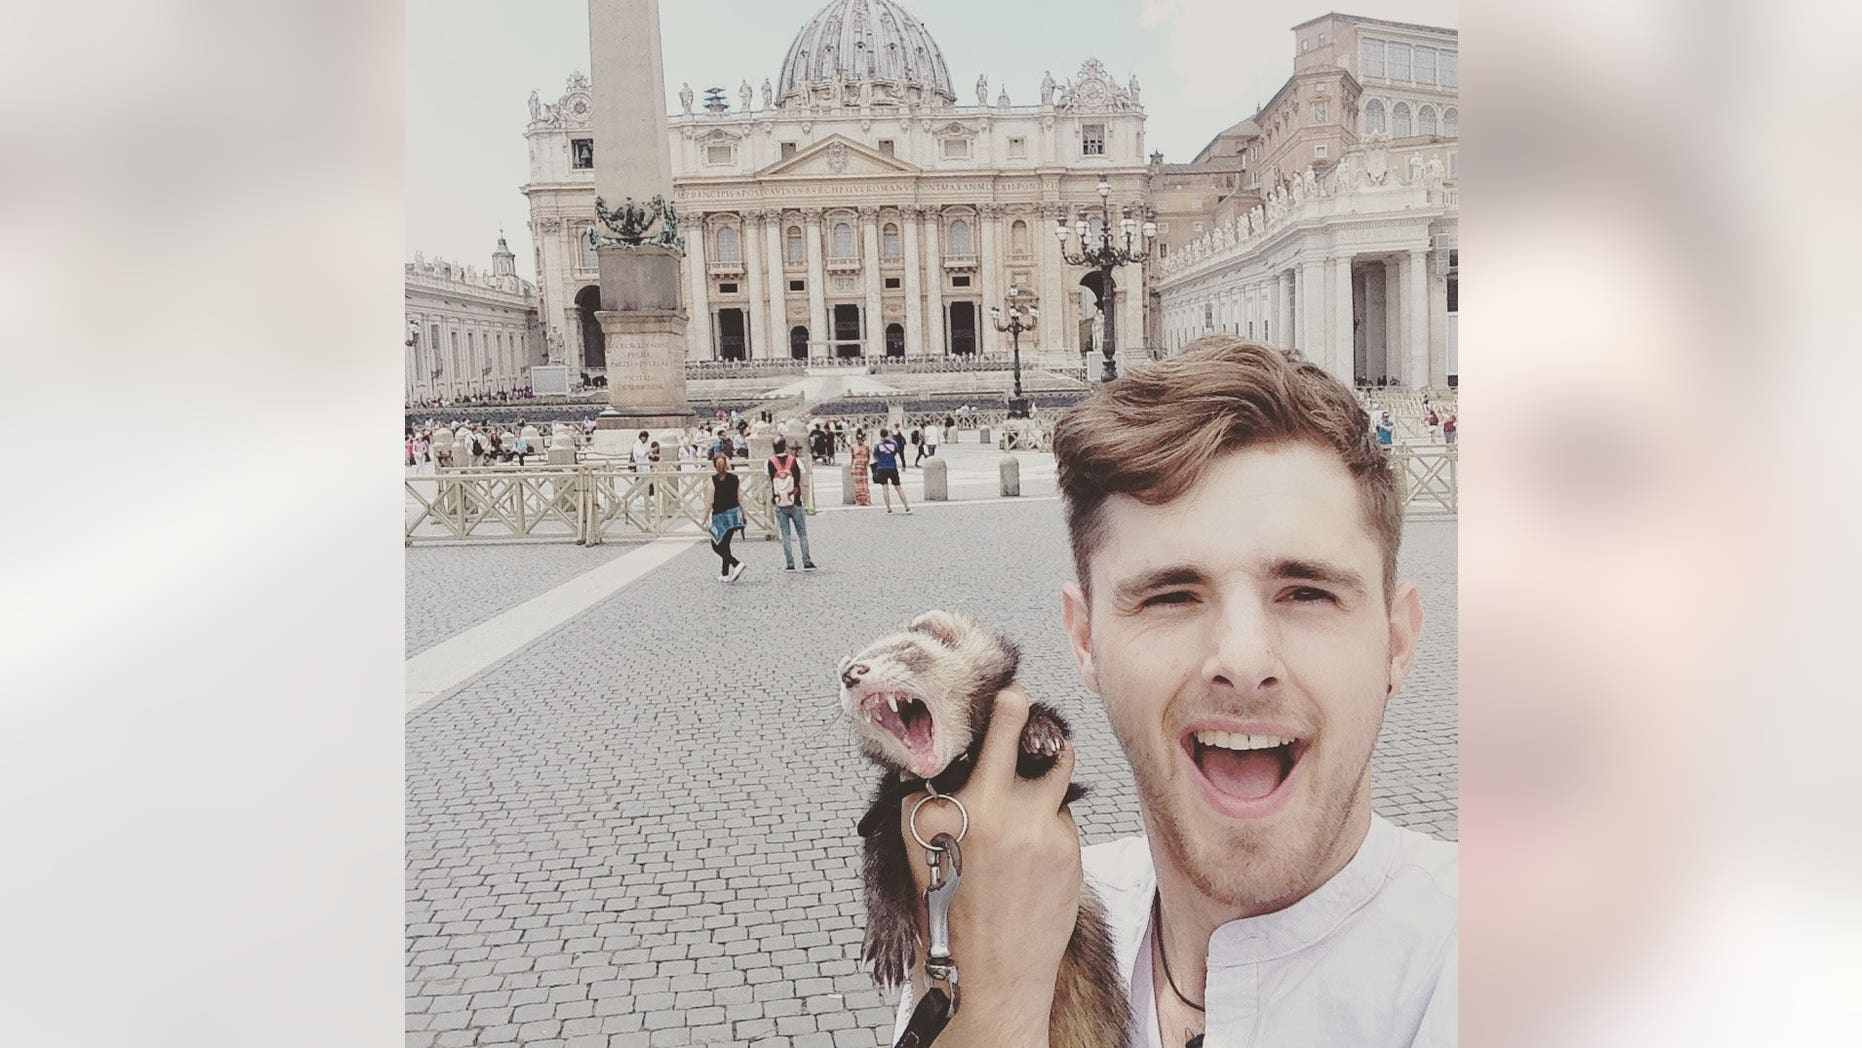 Charlie Hammerton, 25, was grieving following the deaths of his best friend, mother and adopted mom in just a year when he decided to sell his items and travel the world.